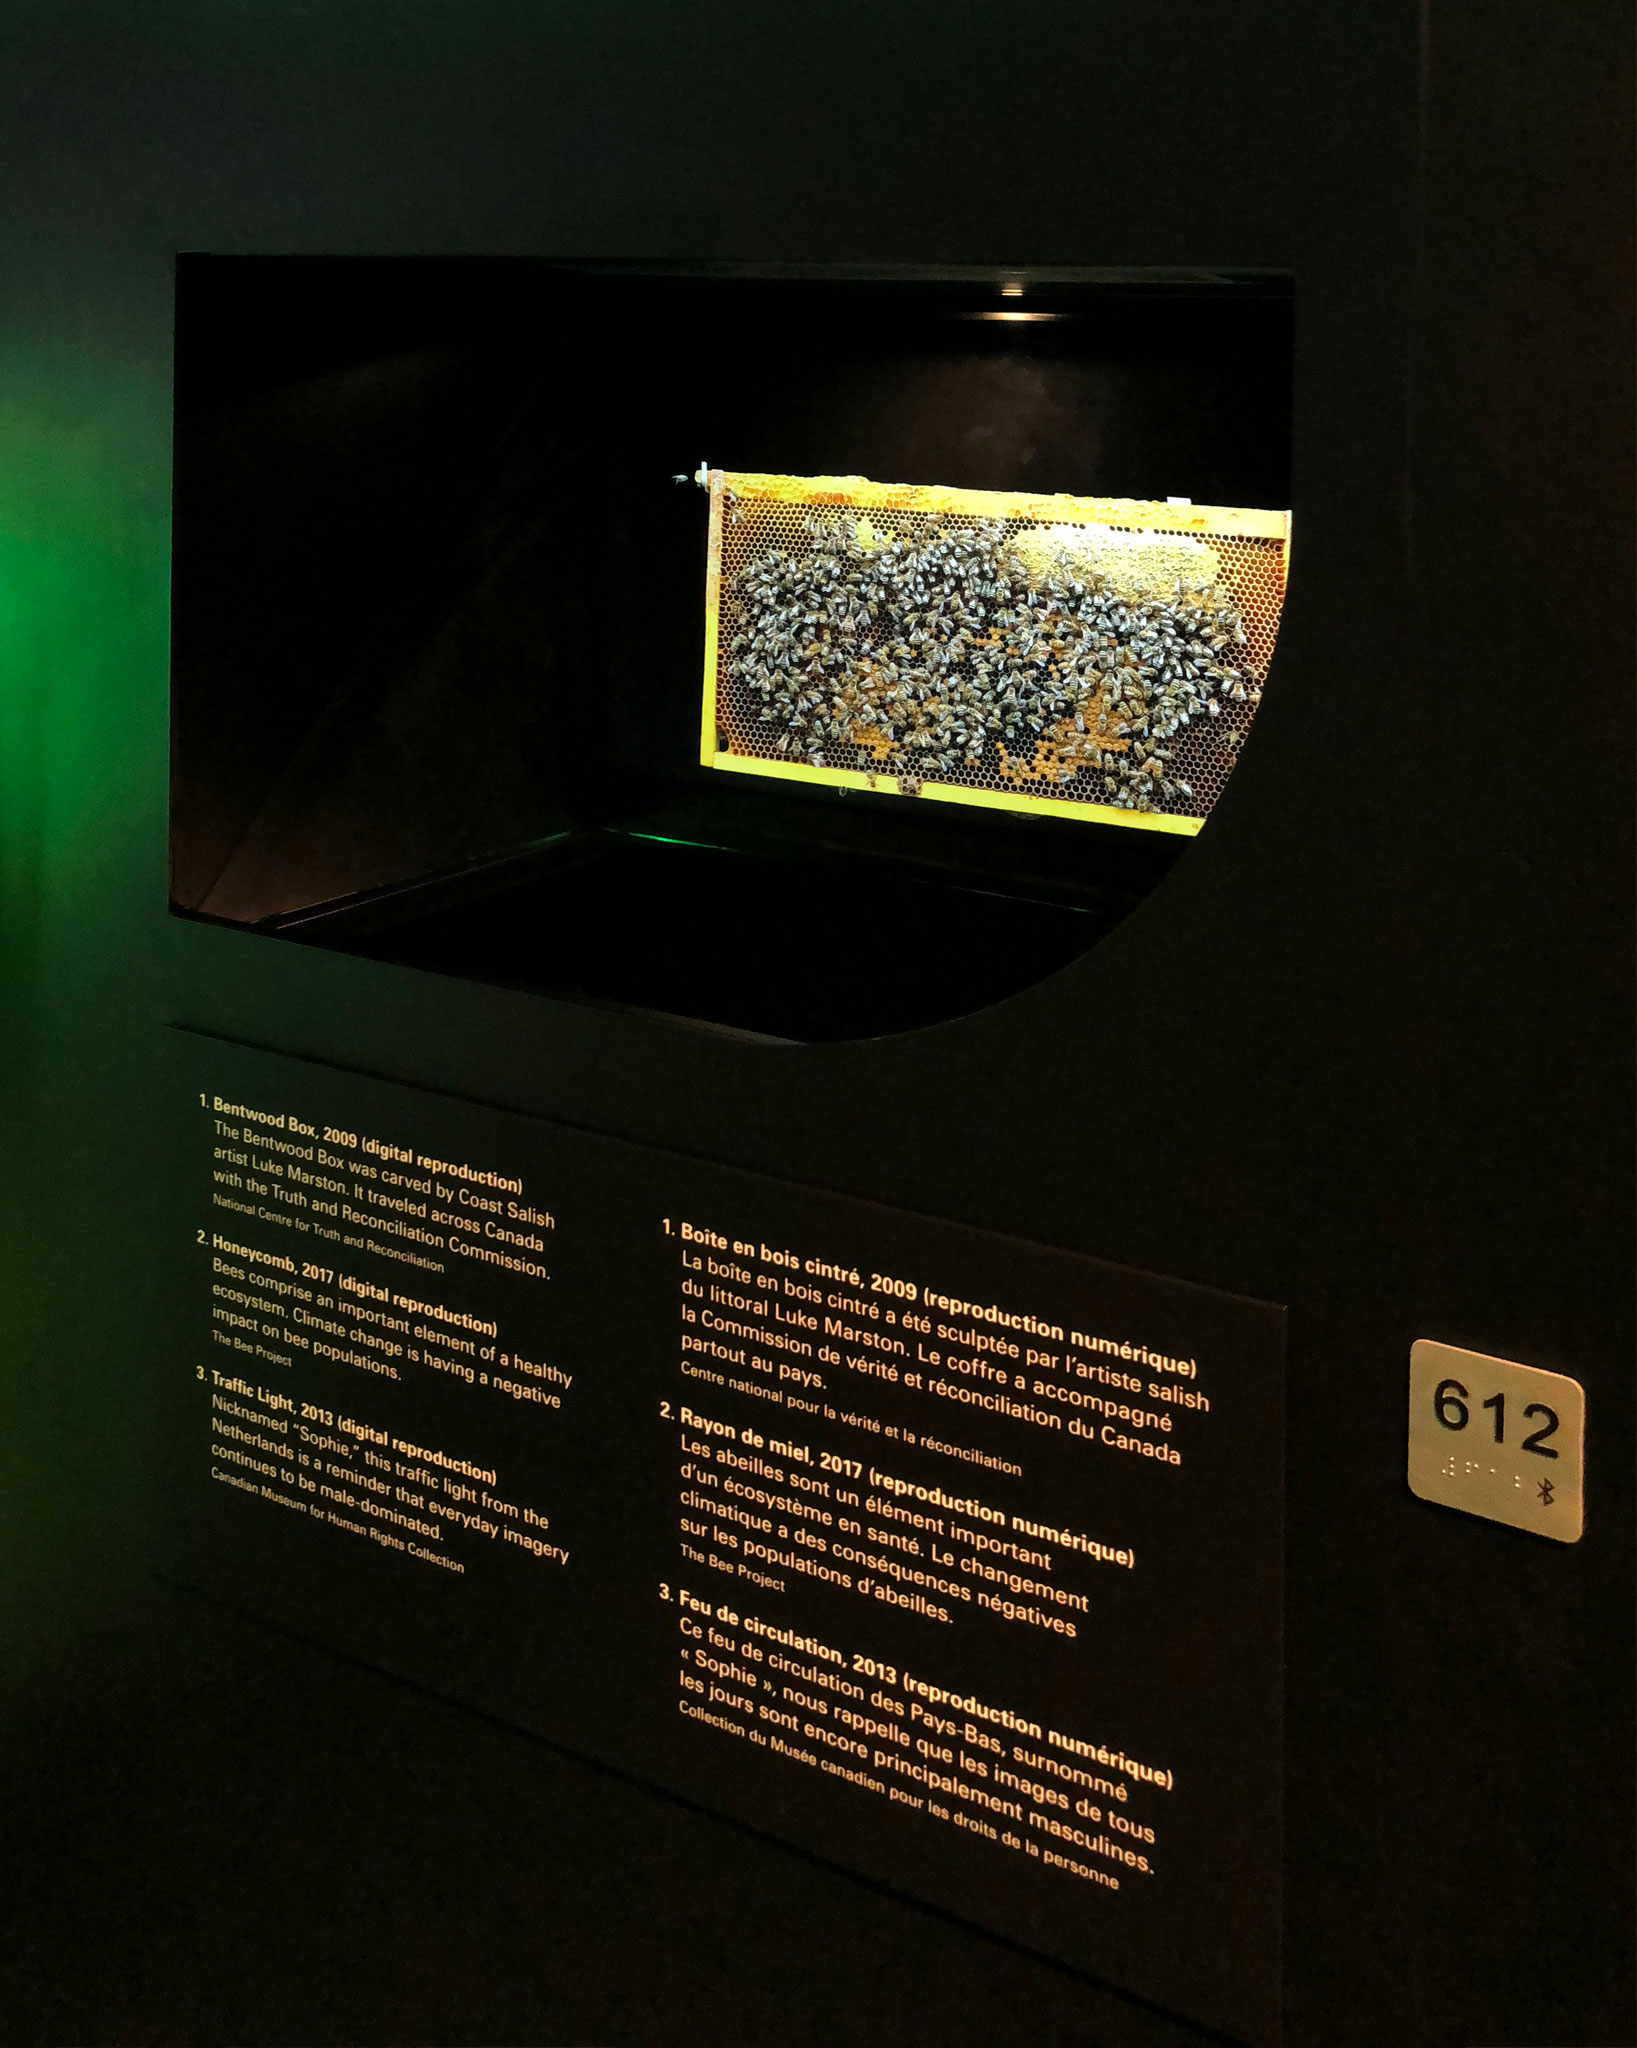 A bee colony is displayed on a holographic device surrounded by printed exhibition text.